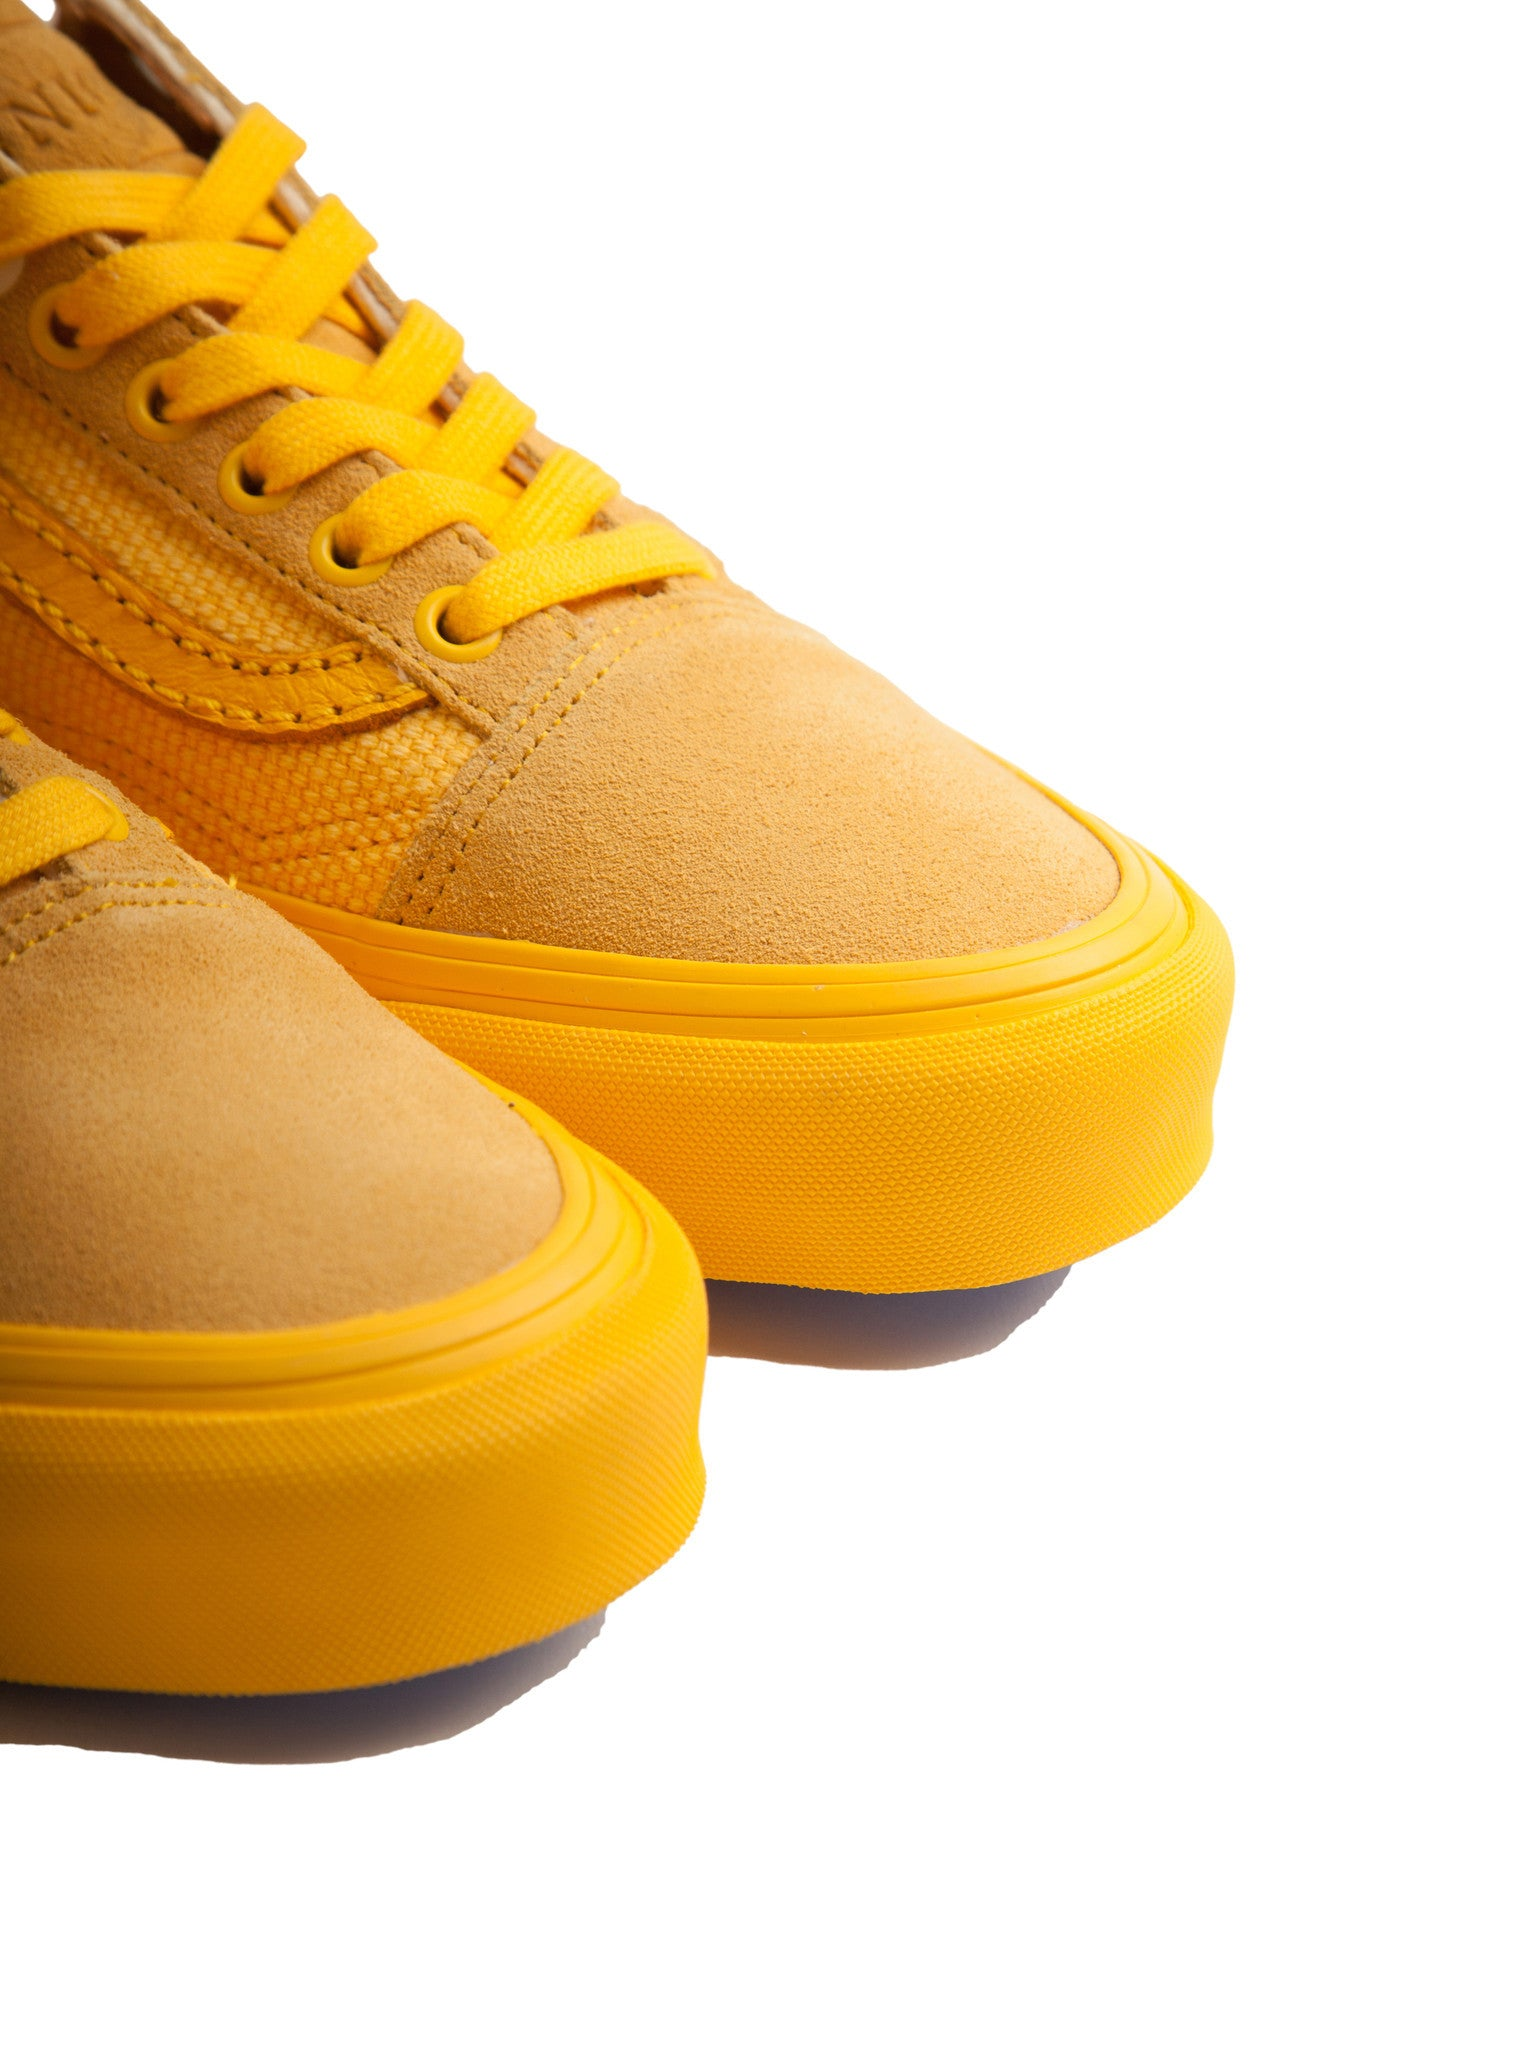 Citrus Vans Vault Old Skool (UNION) - Citrus 3